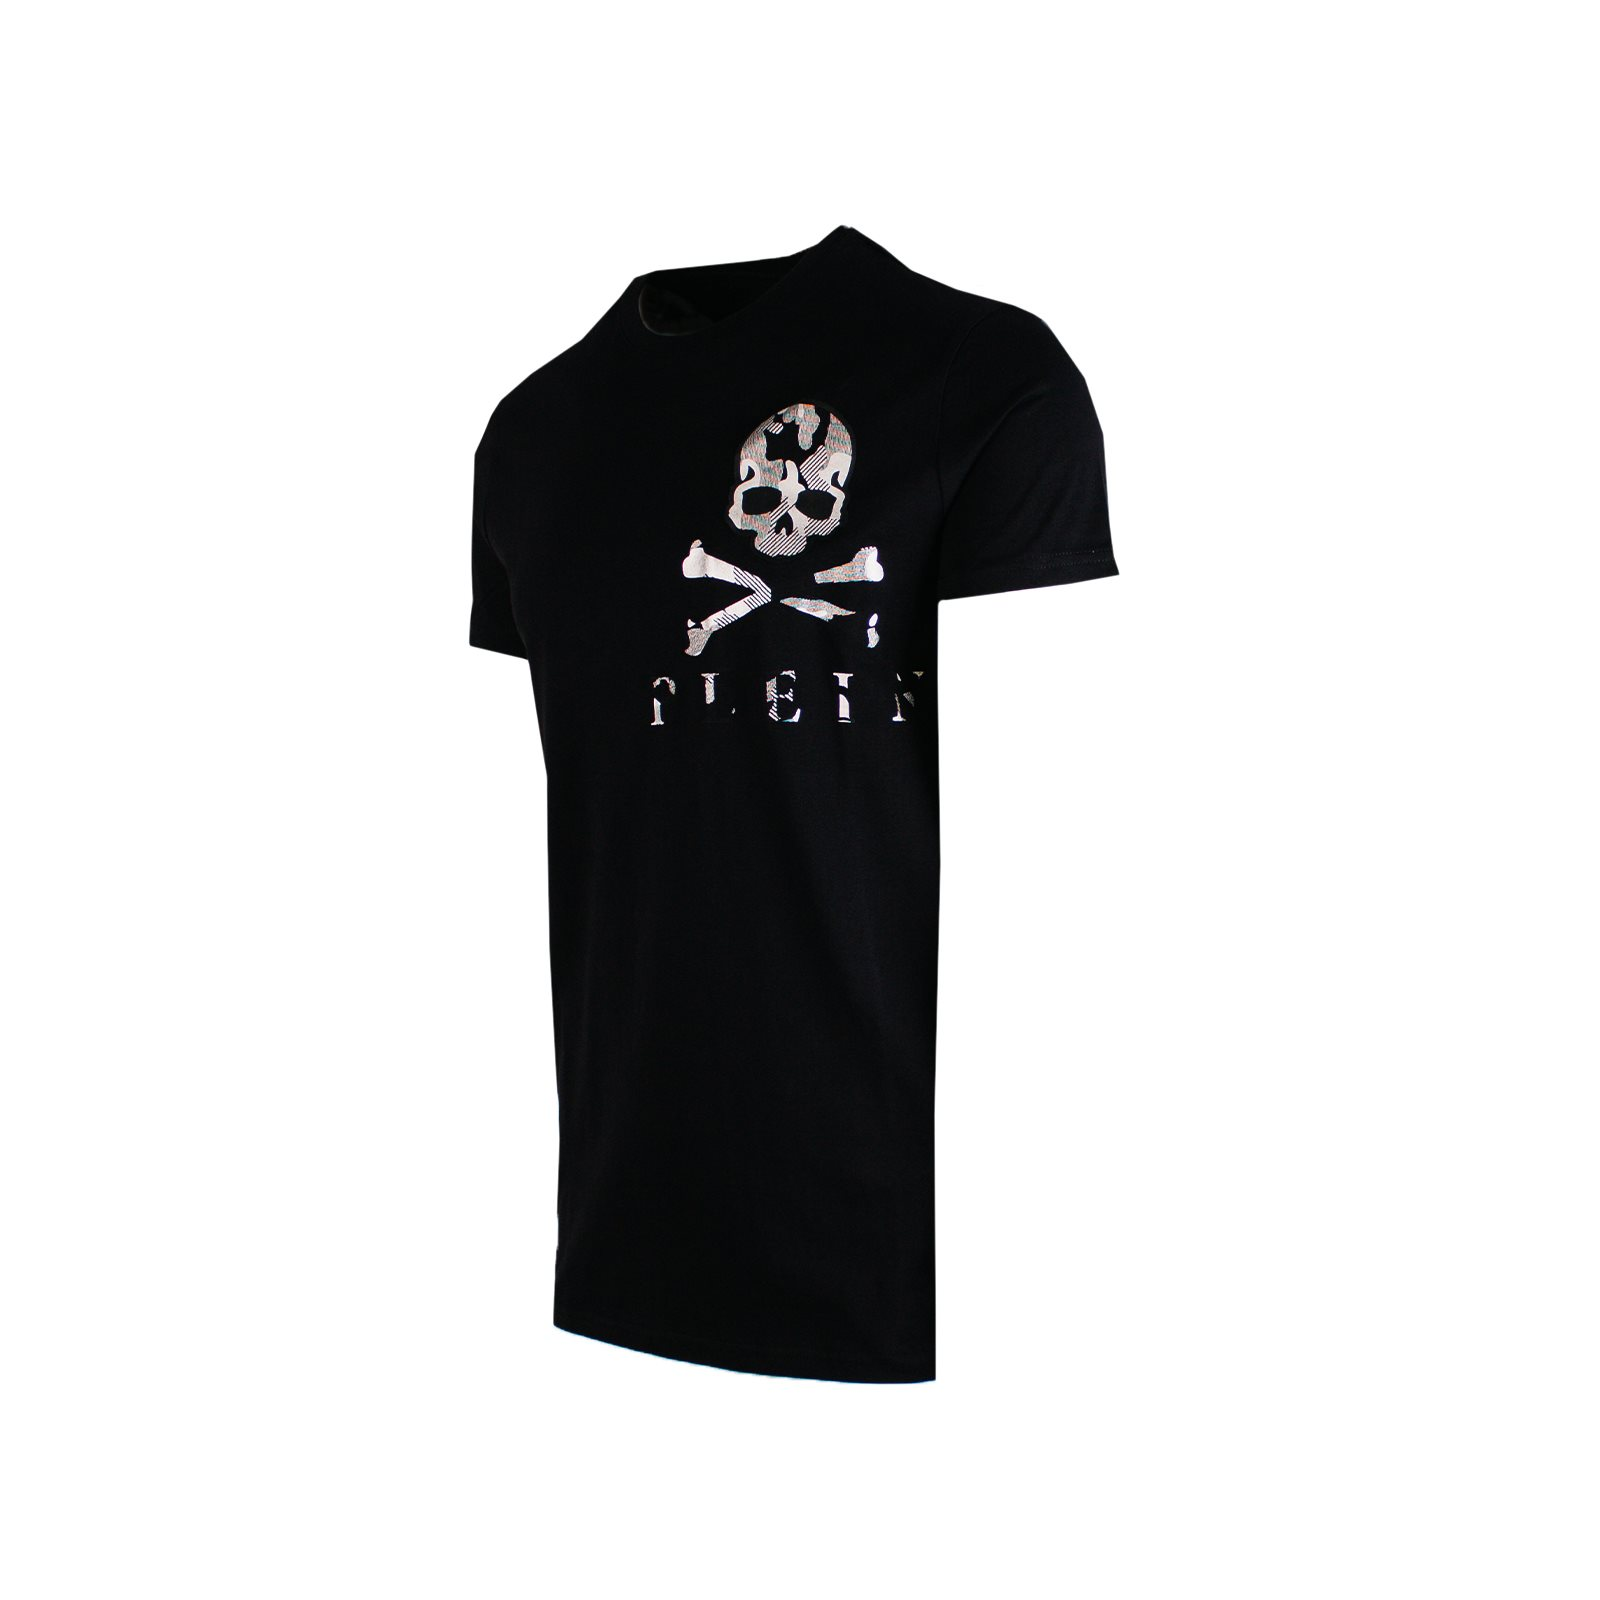 Philipp Plein T-shirt 2